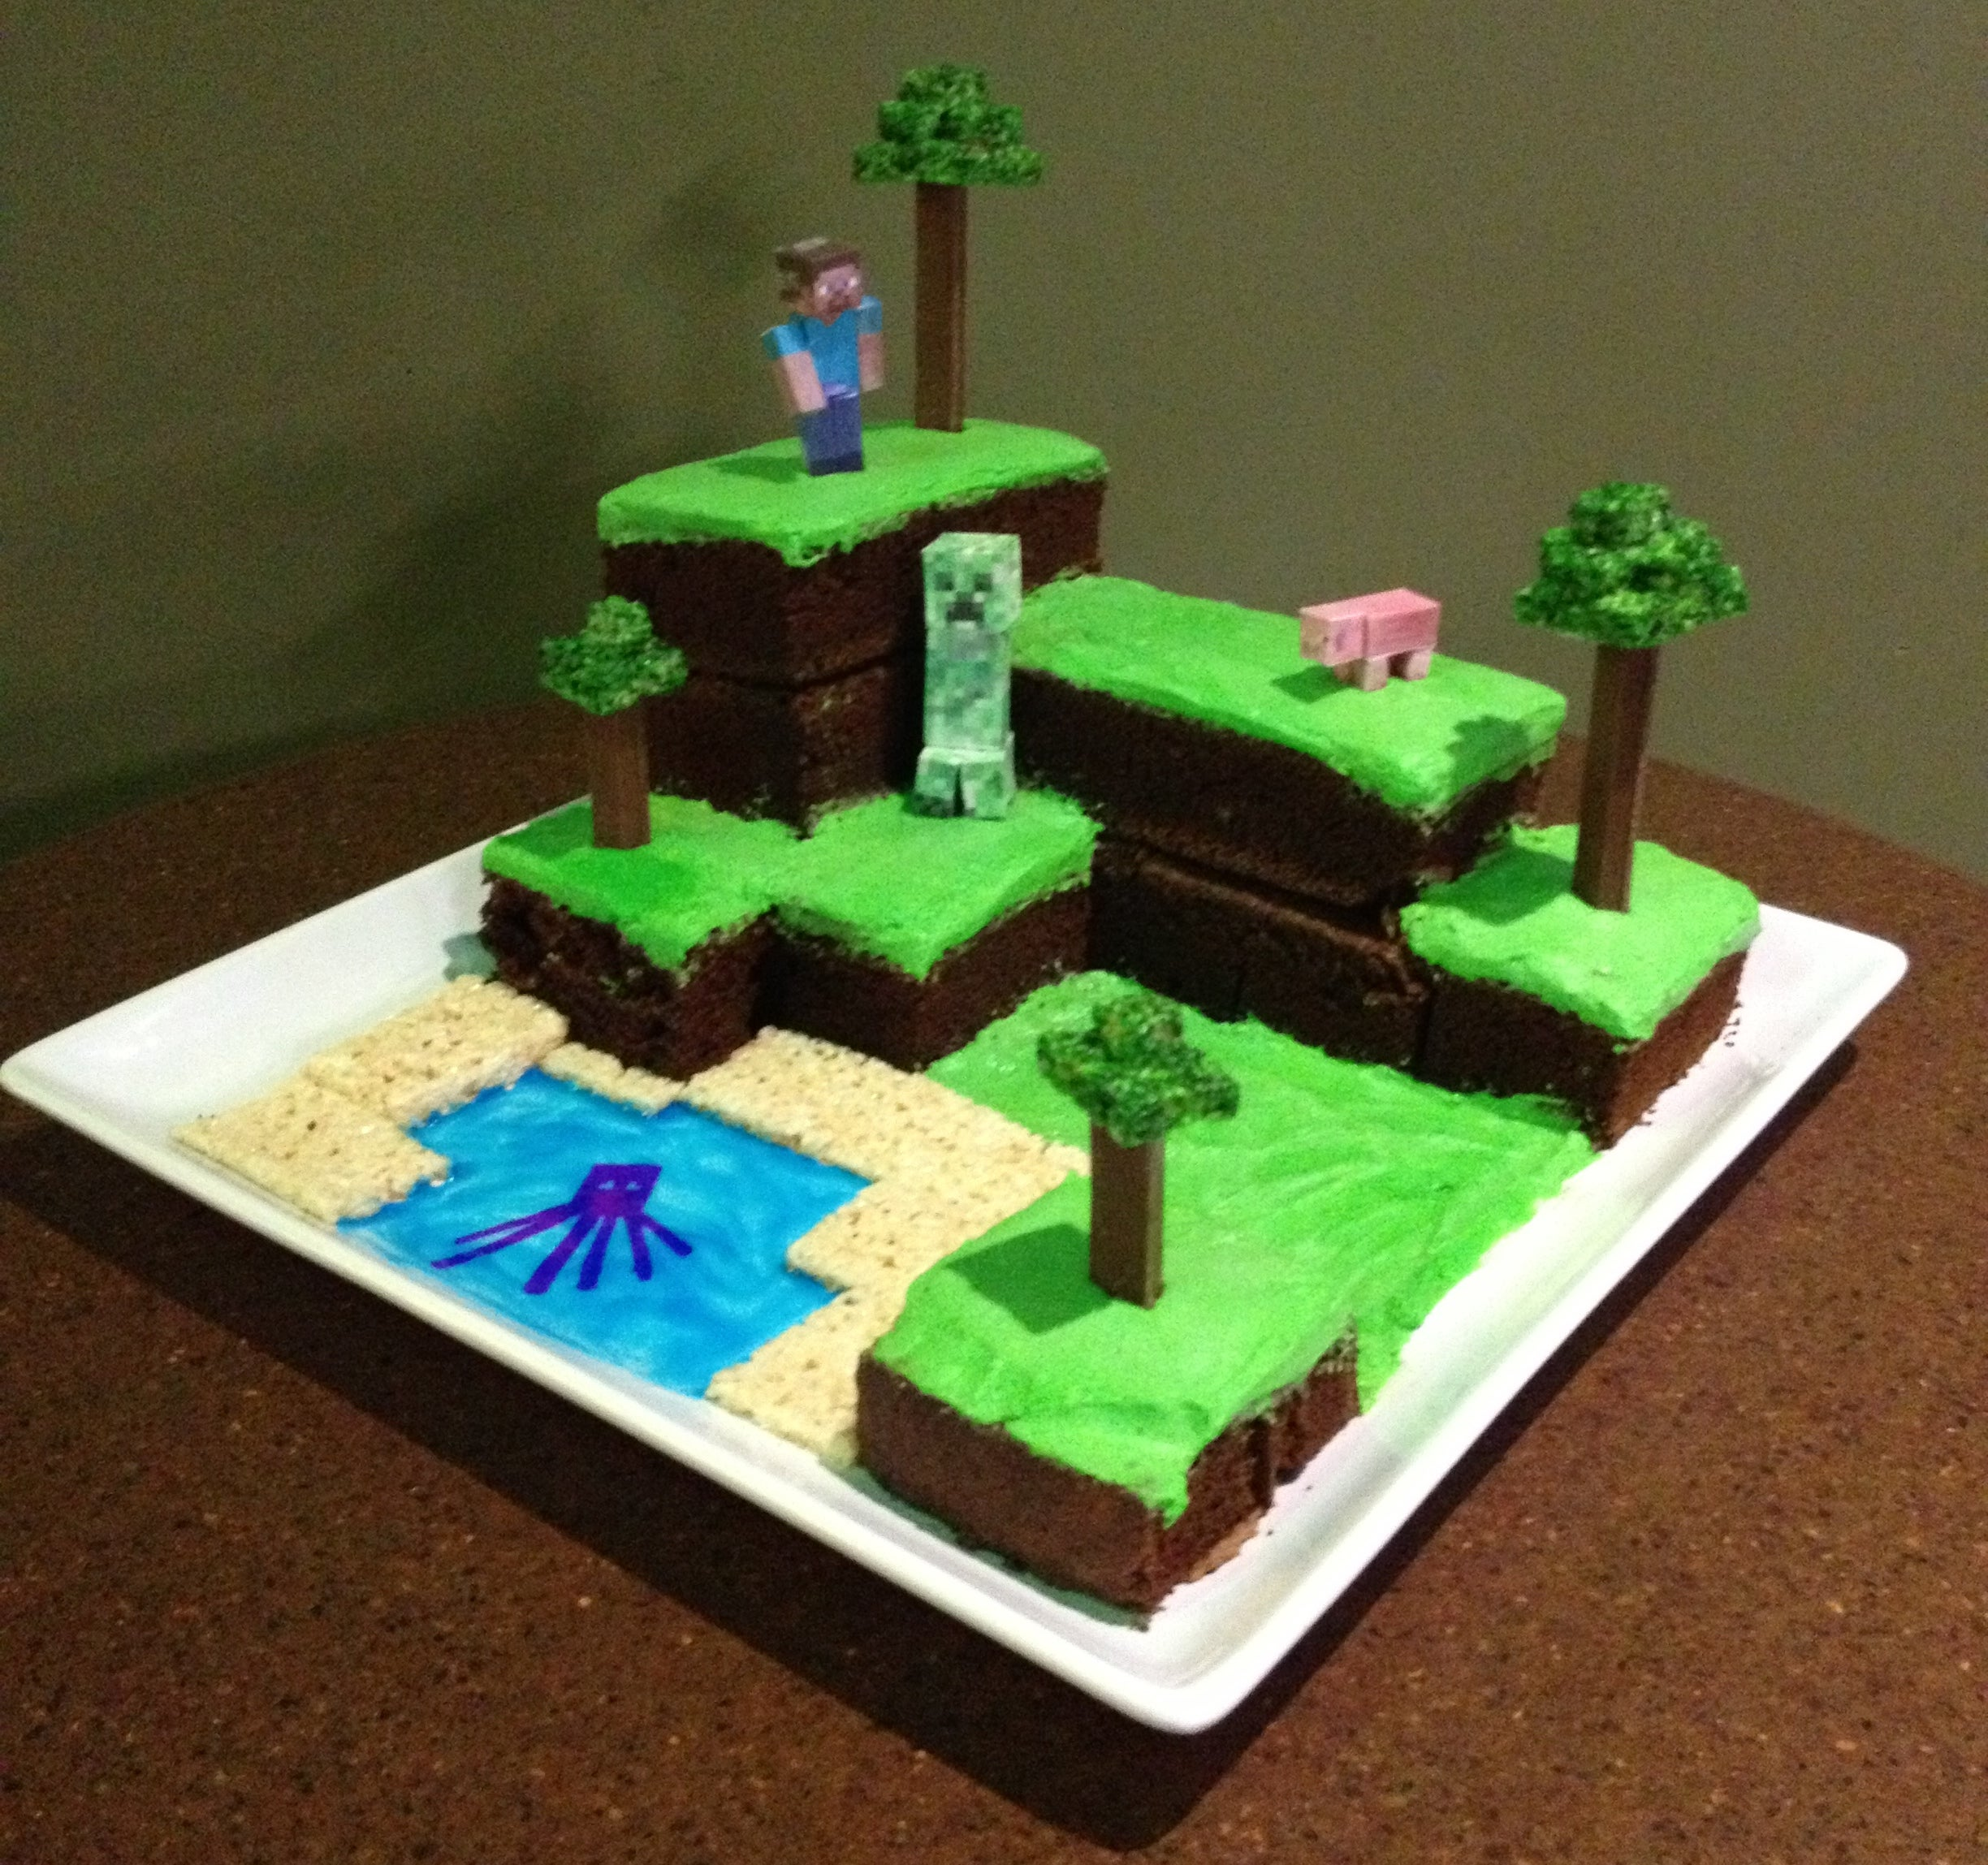 Tremendous Minecraft World Cake With Pictures Instructables Funny Birthday Cards Online Fluifree Goldxyz